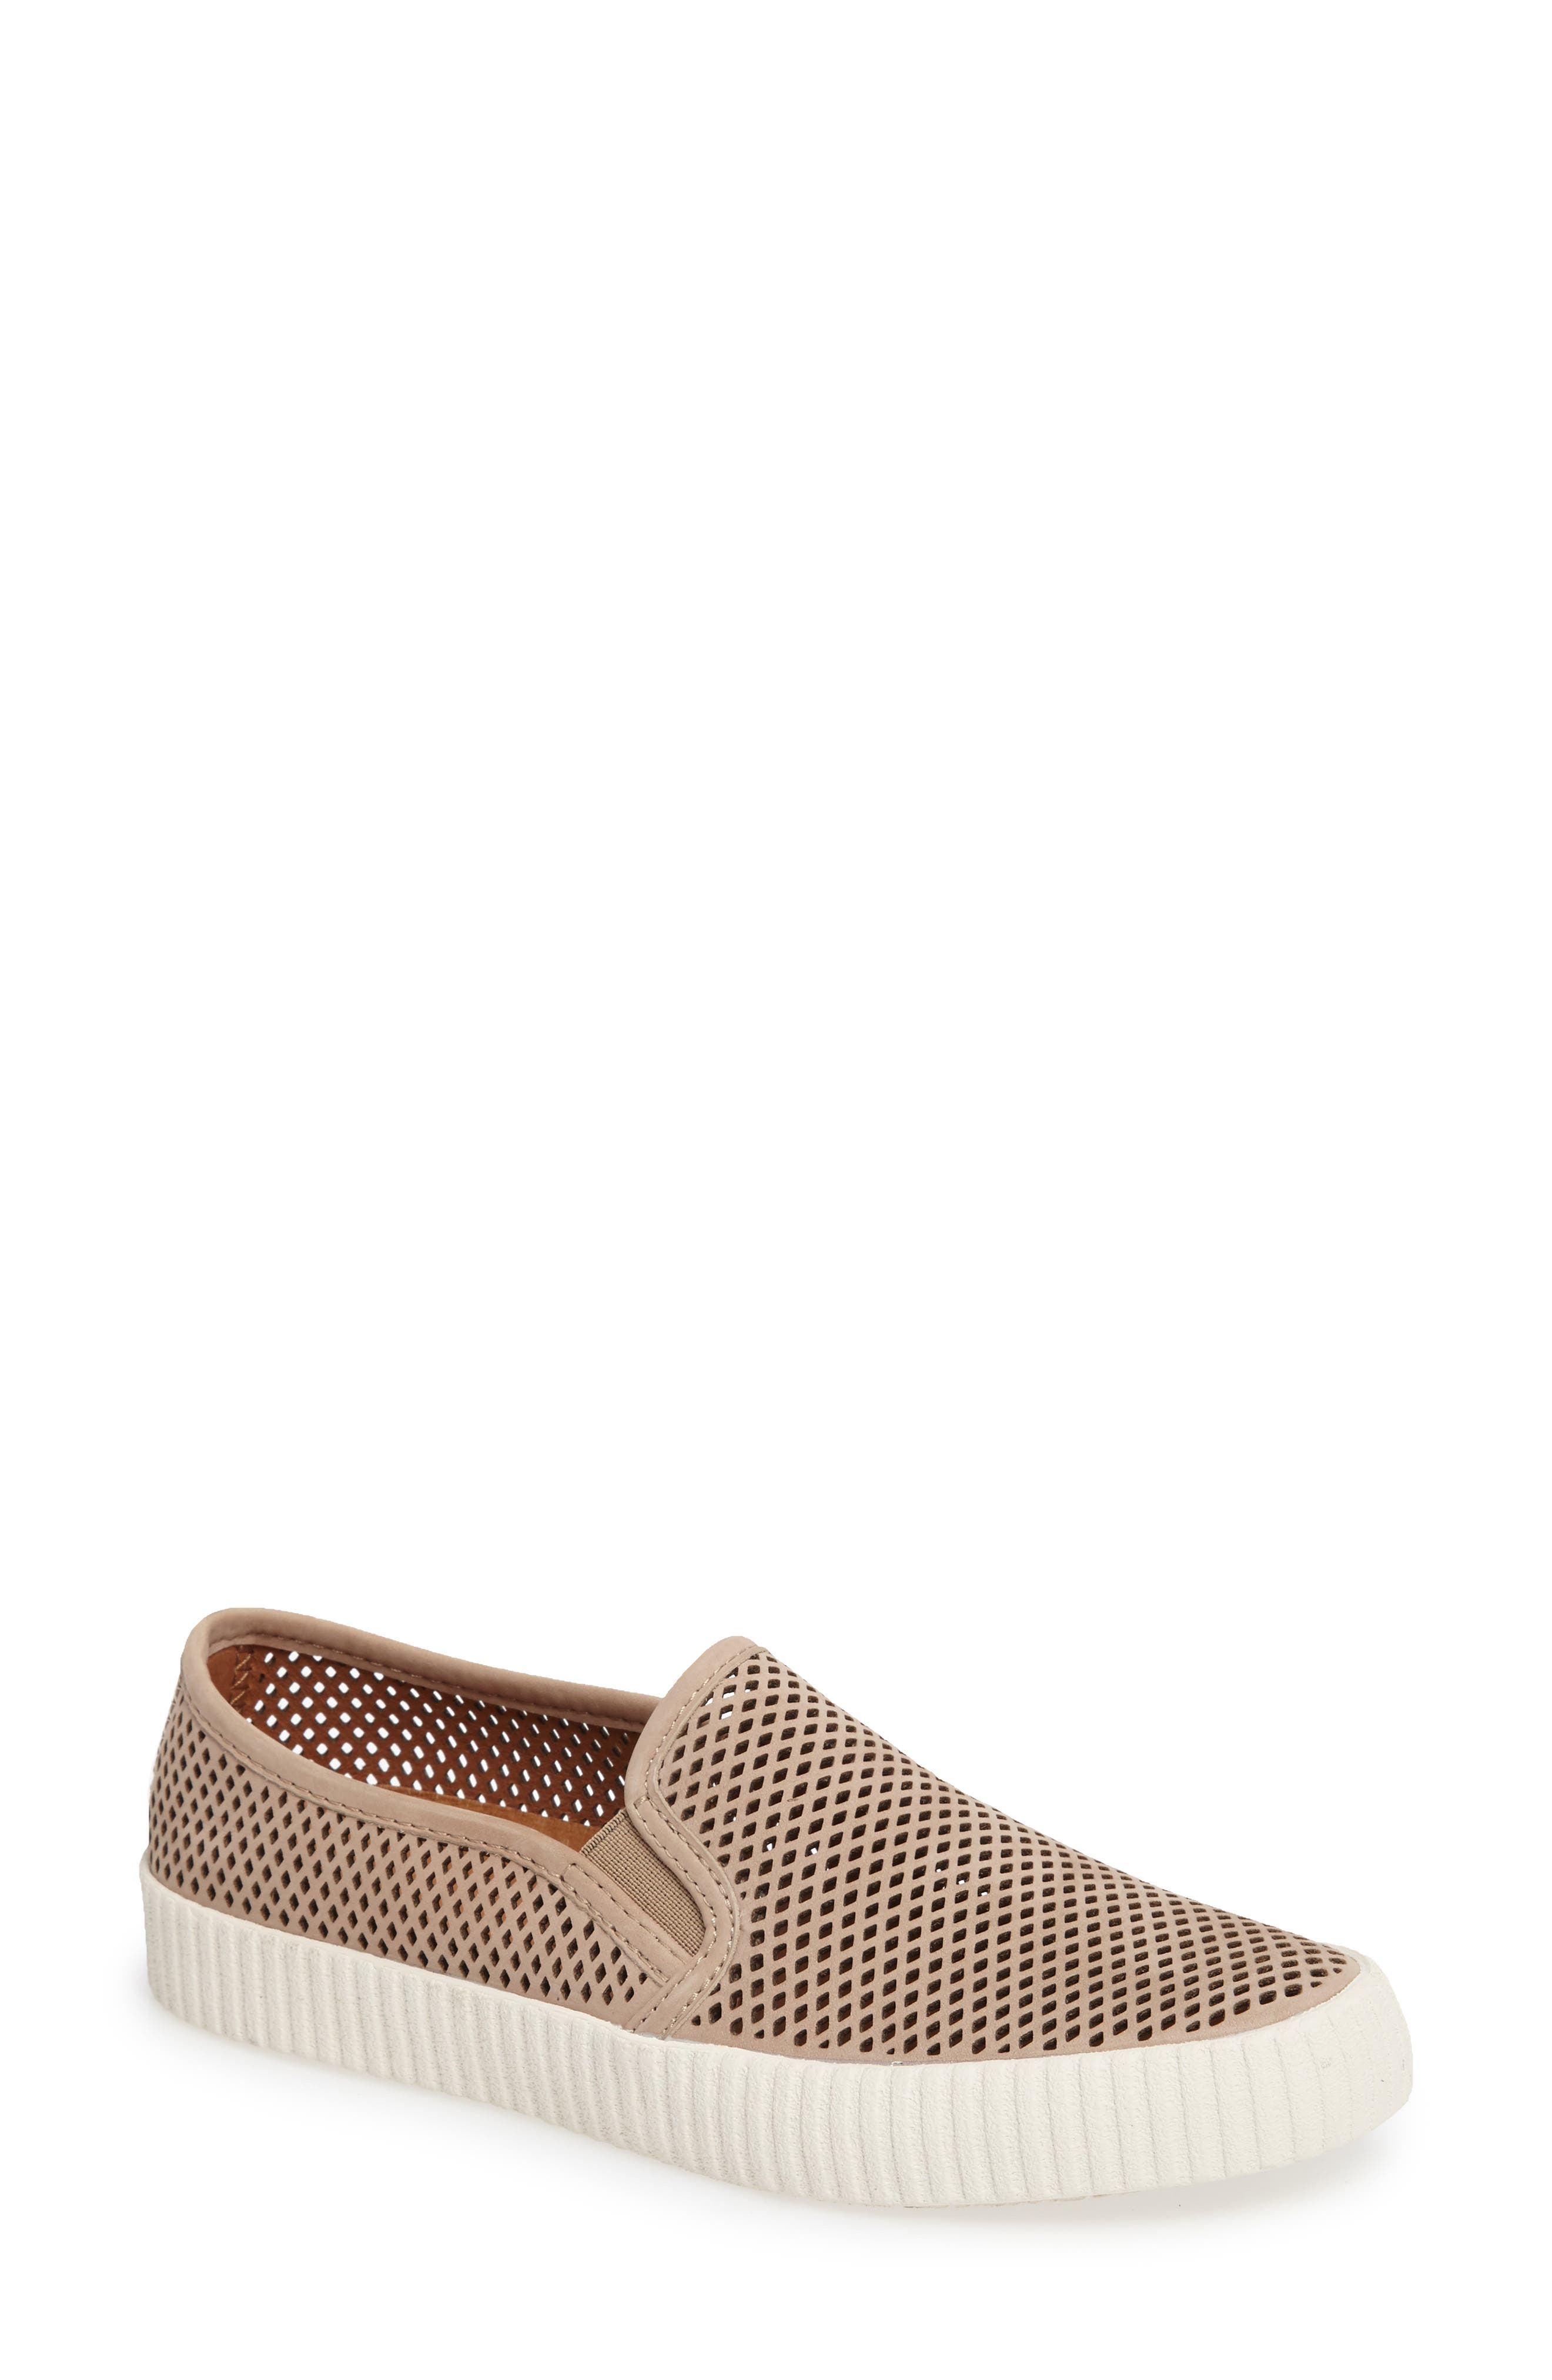 Camille Perforated Slip-On Sneaker,                             Main thumbnail 2, color,